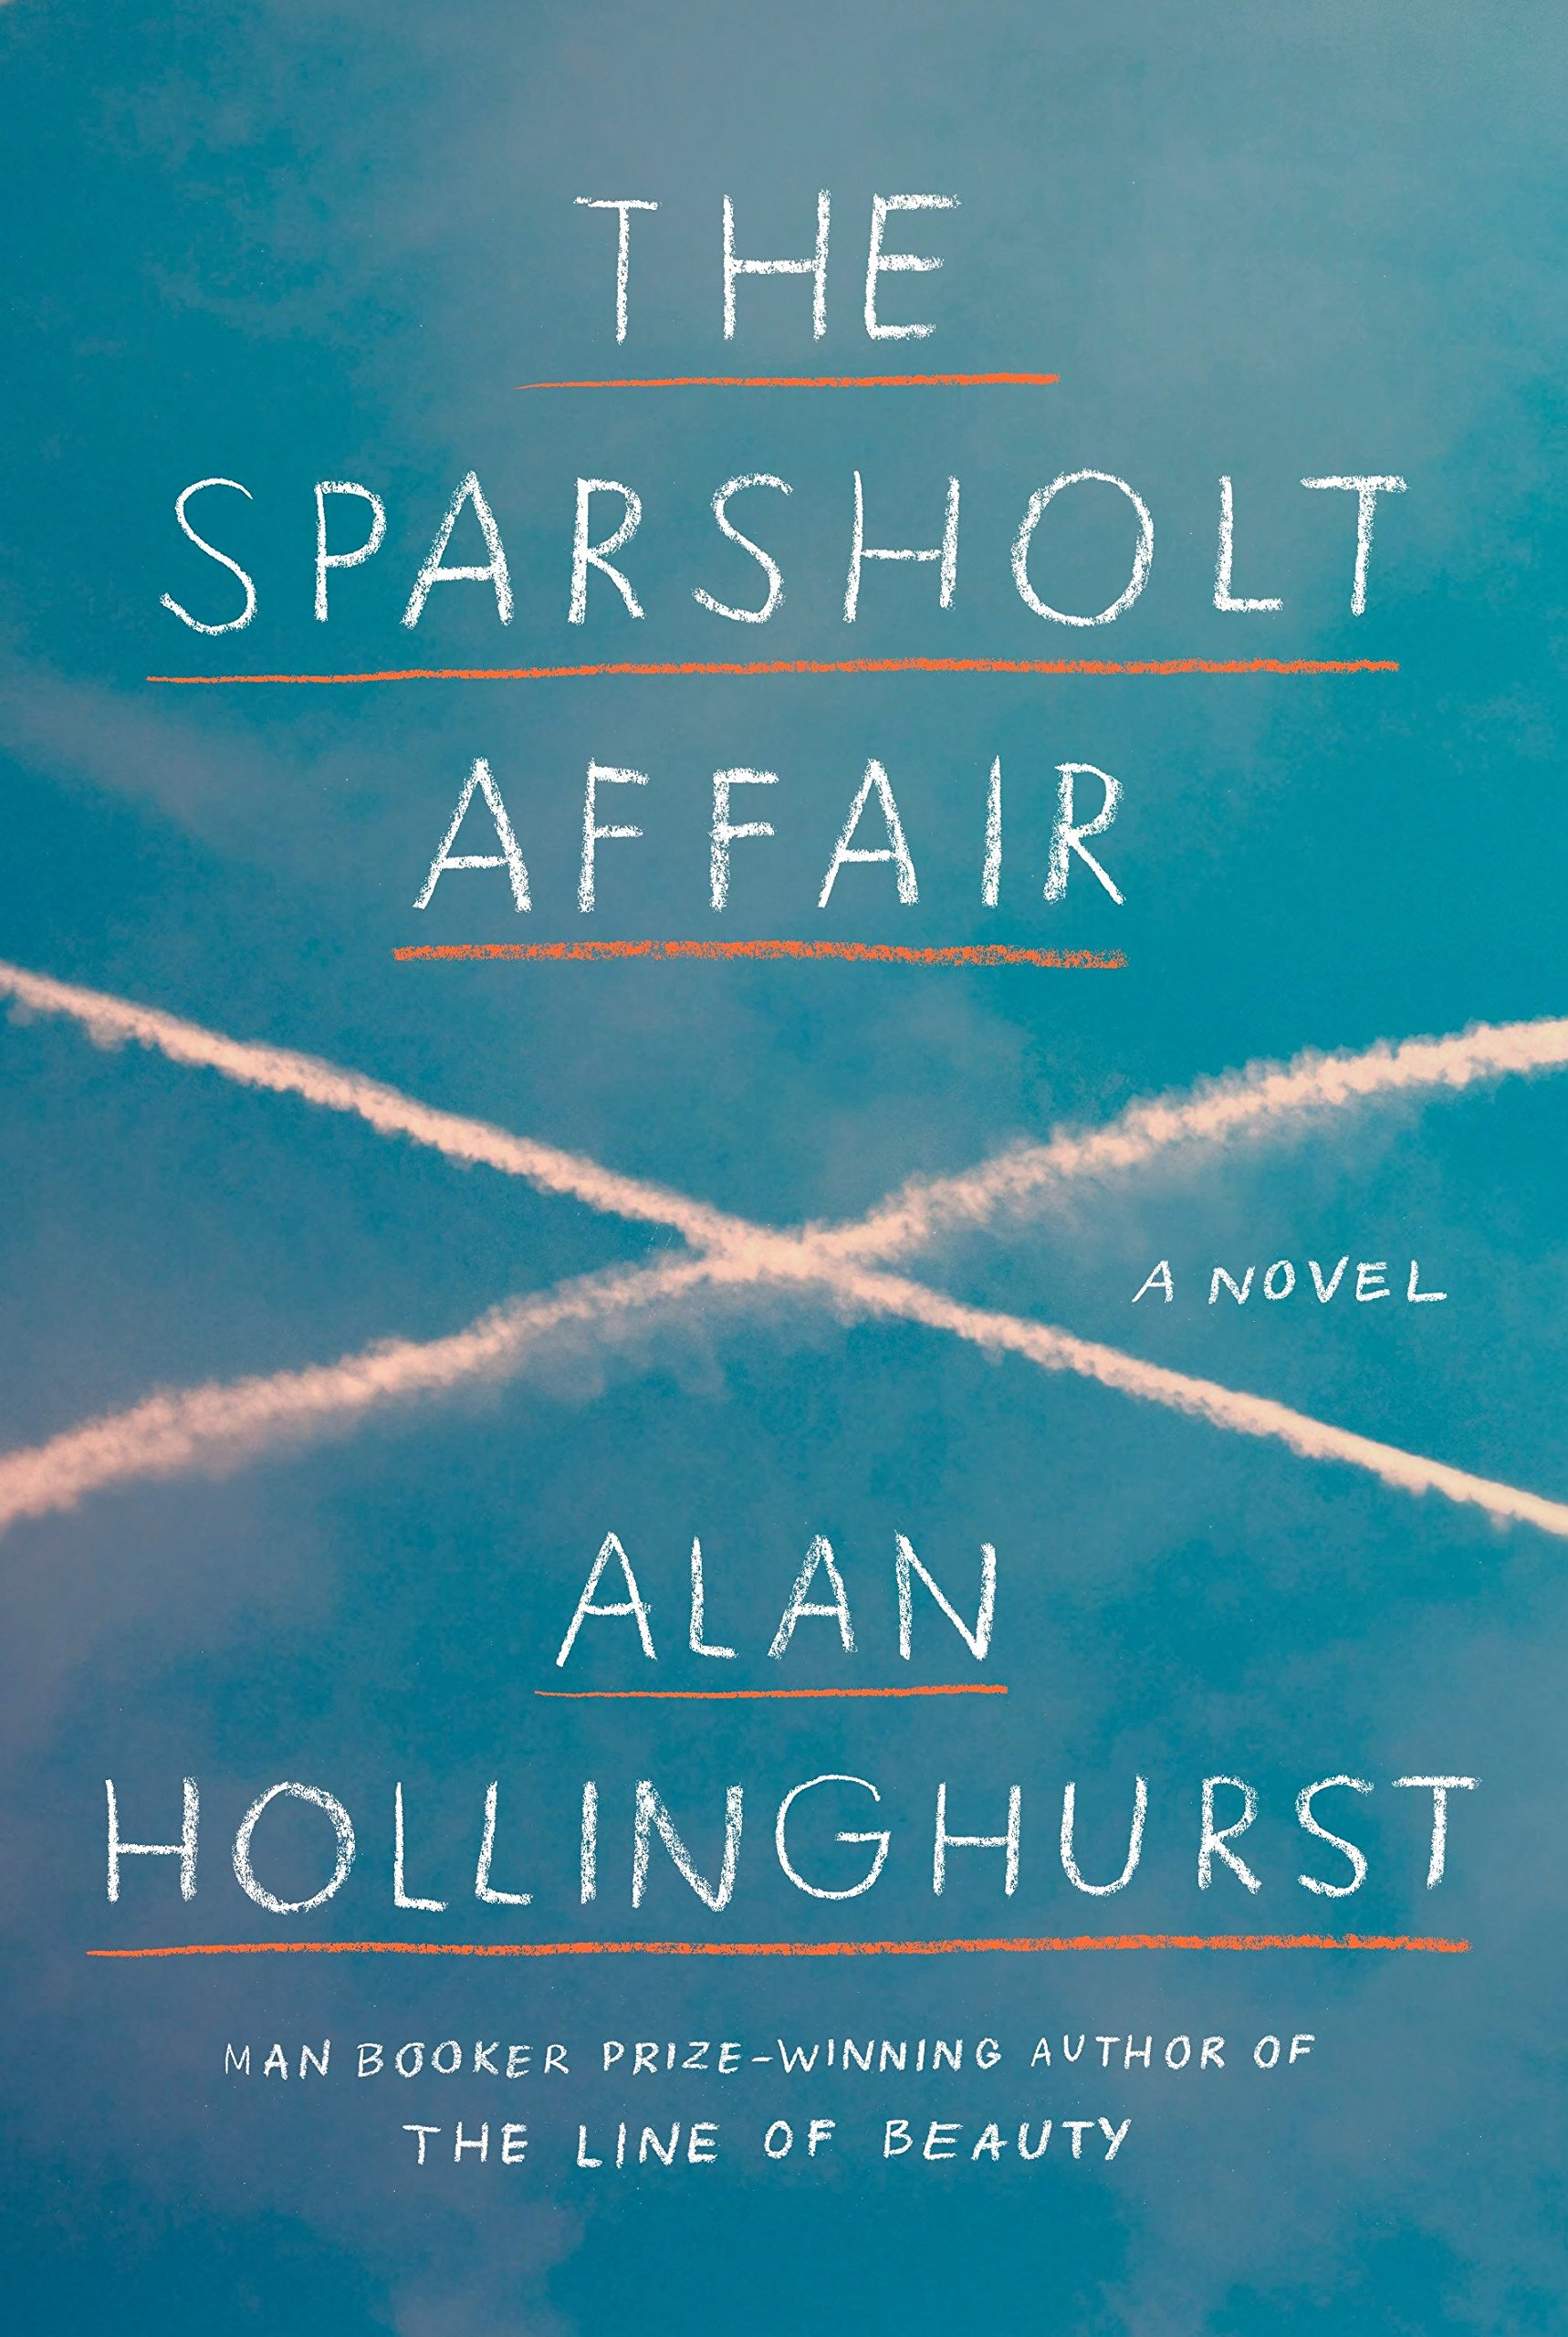 - THE SPARSHOLT AFFAIR BY Alan HollinghurstIn 1940, David Sparsholt arrives at Oxford to study engineering. Handsome, athletic, charismatic, he is unaware of his powerful effect on others—especially on Evert Dax, the lonely and romantic son of a celebrated novelist. A friendship develops between David and Evert that will influence their lives for decades to come.New York Times 100 Notable Books, NPR Best of the Year, Washington Post's 50 Notable Works of Fiction